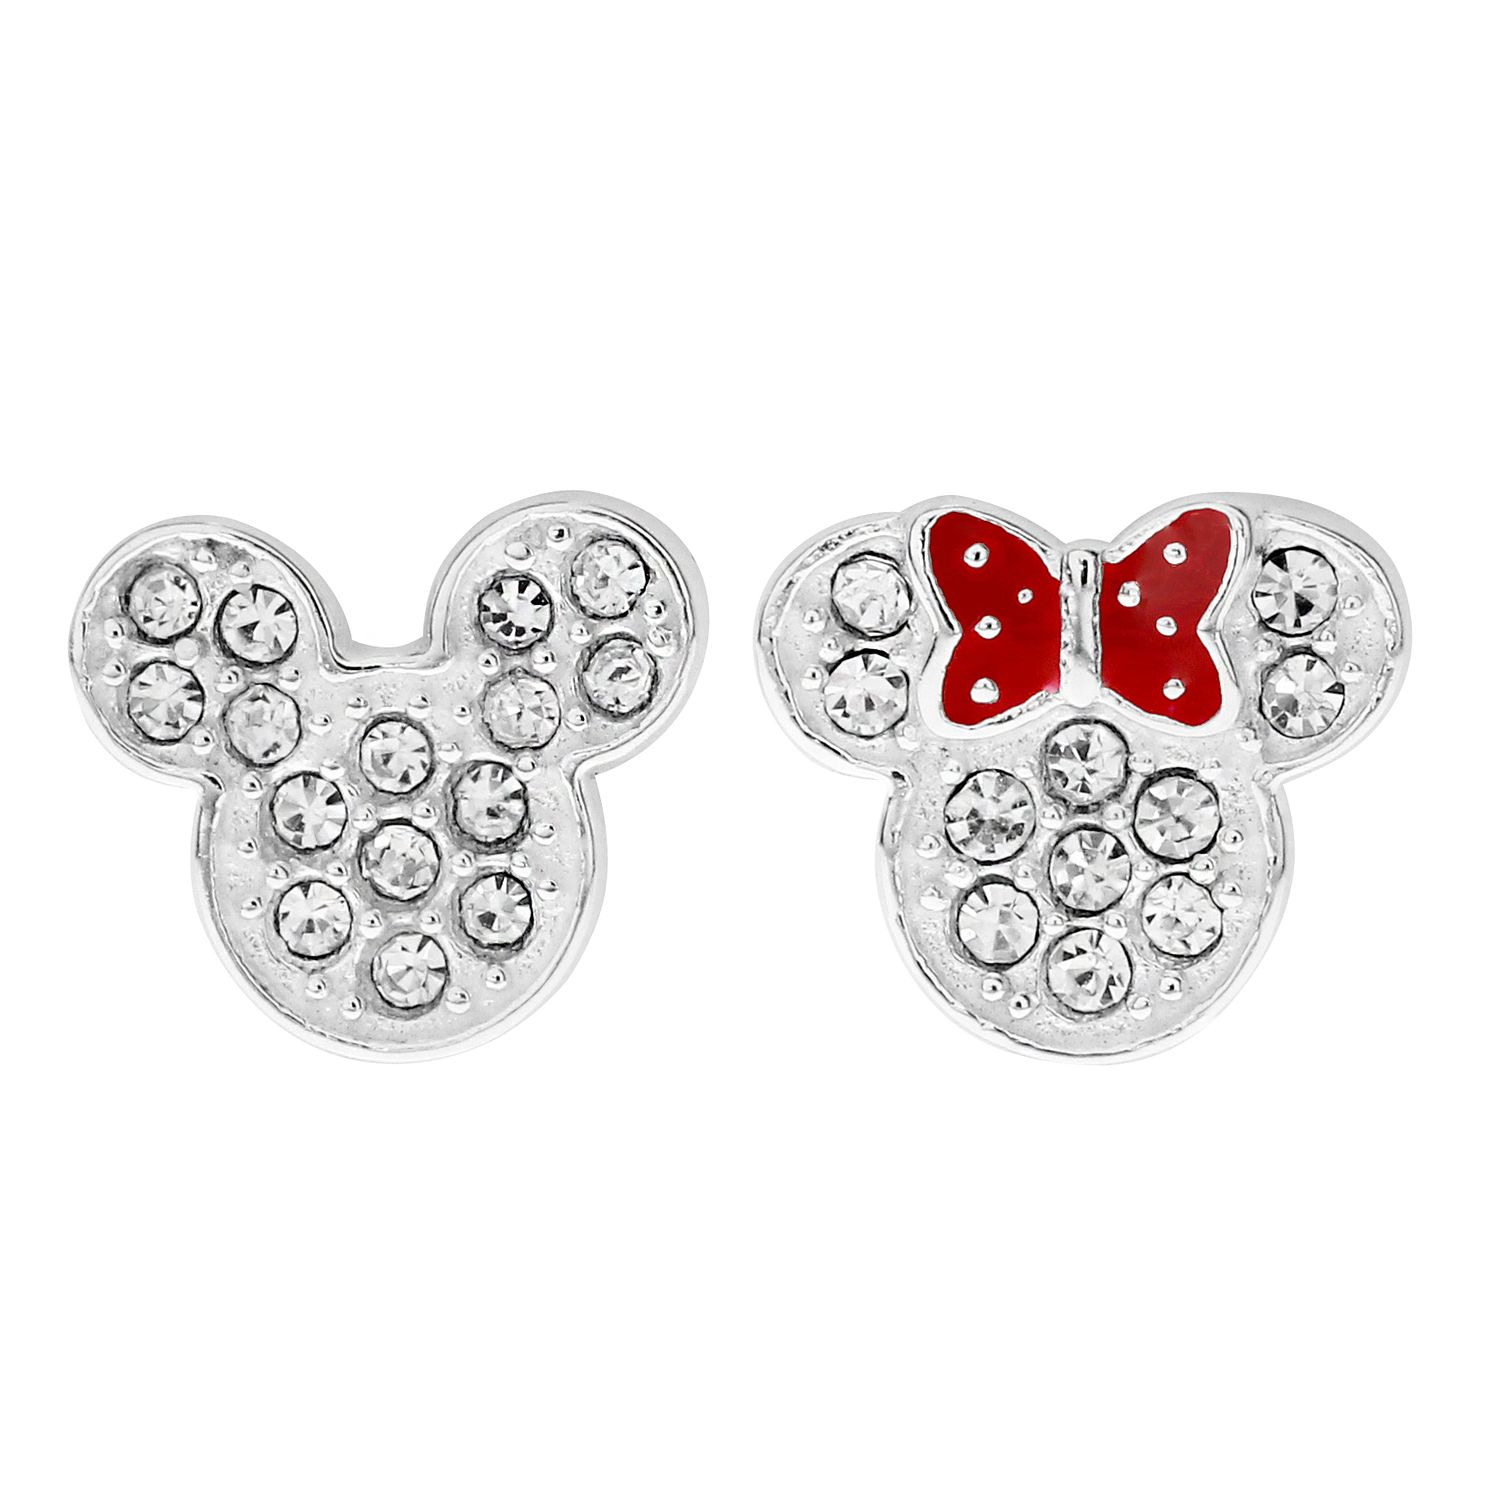 Disney Children's Mickey & Minnie Mouse Head Stud Earrings - Product number 1034294